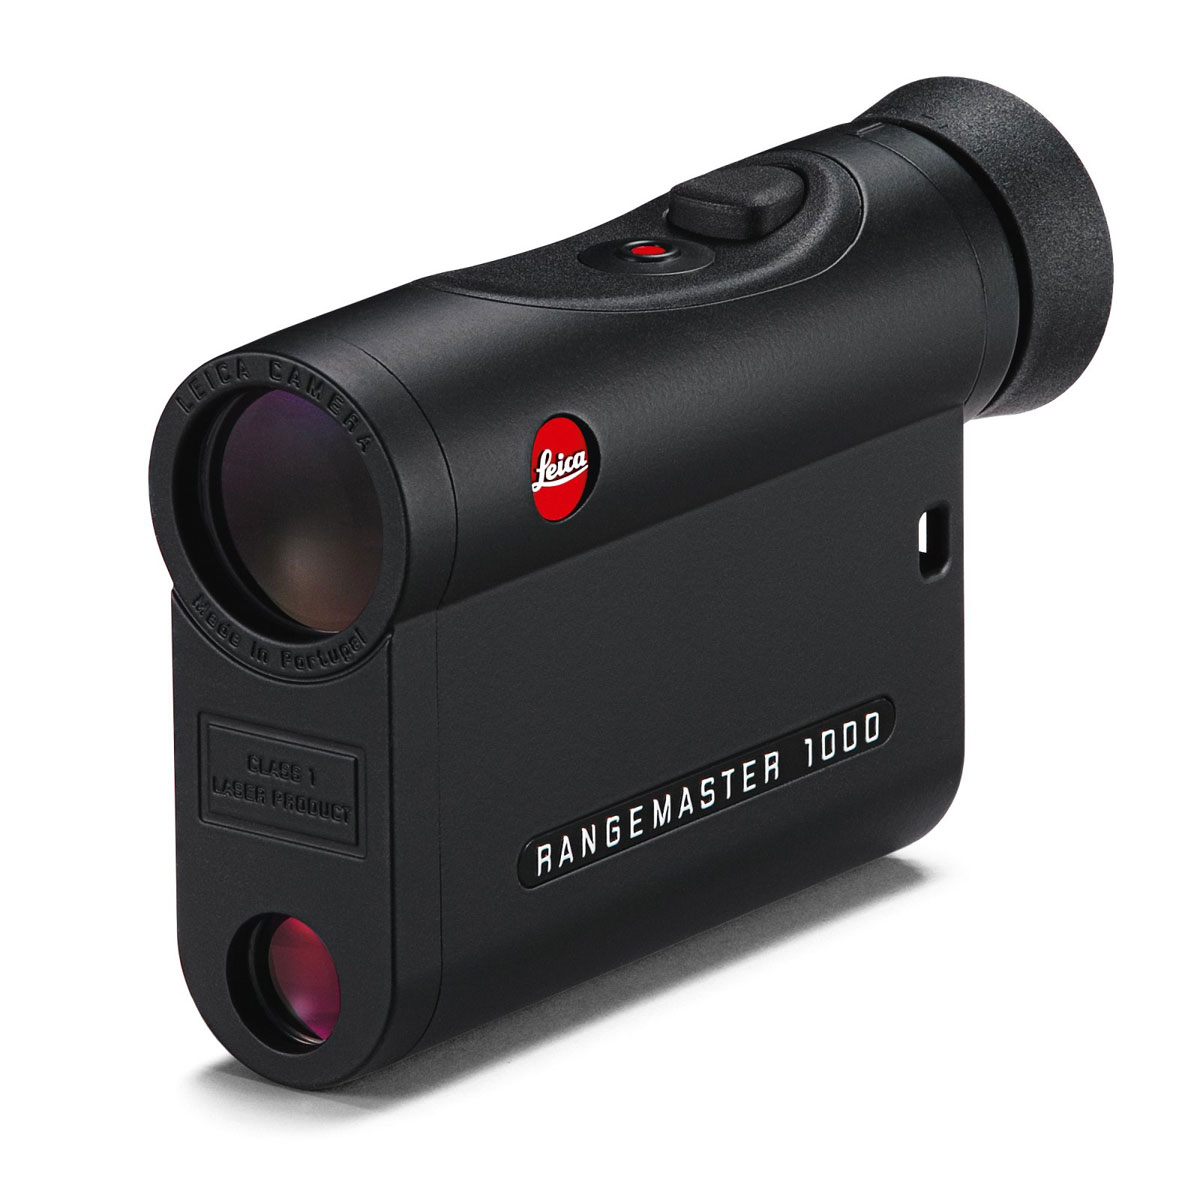 New Rangemaster CRF 1000-R Laser Rangefinder by Leica Sport Optics